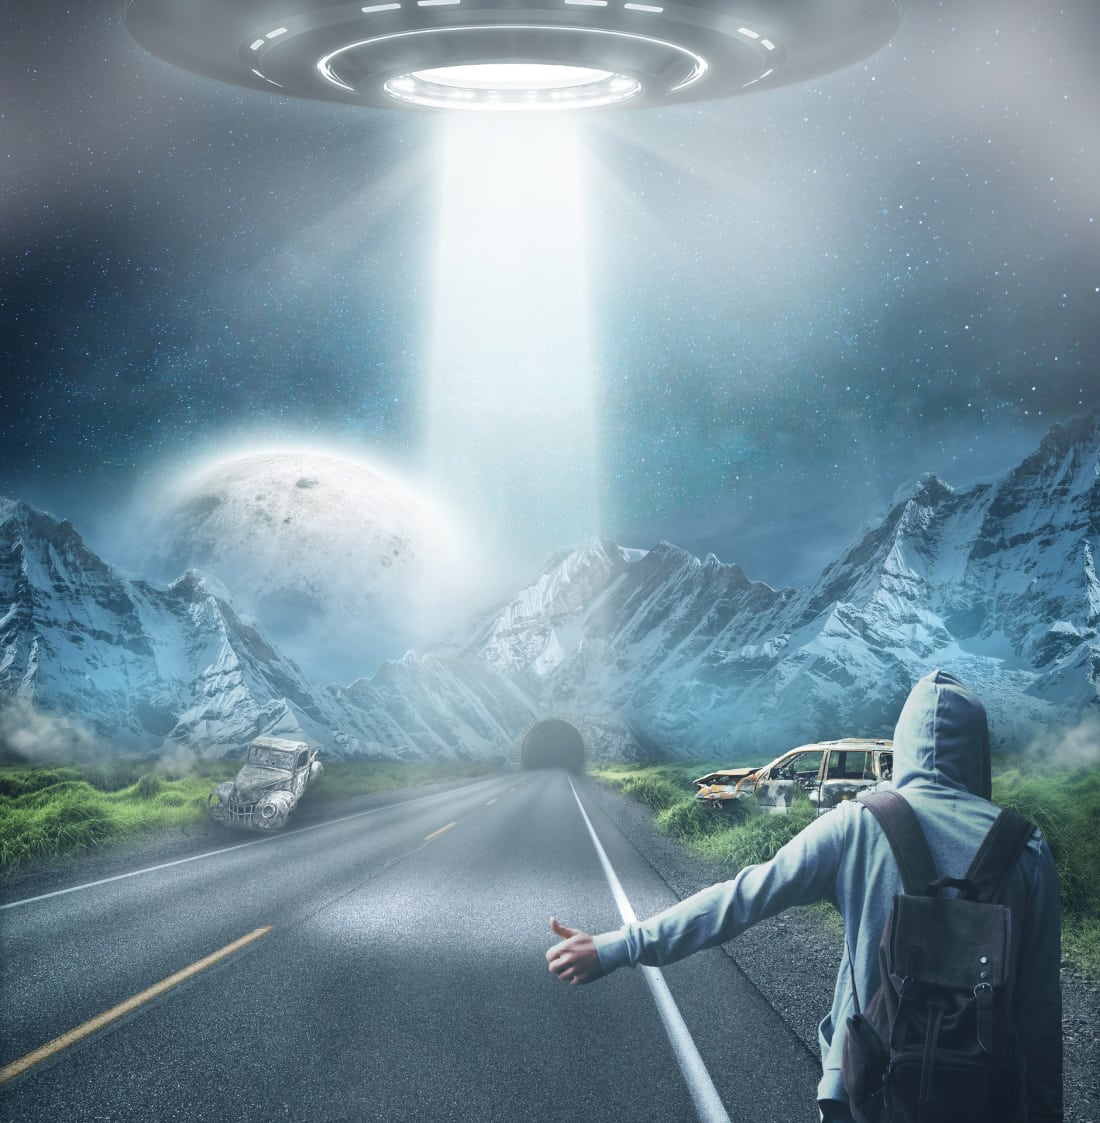 UFO Belief Systems